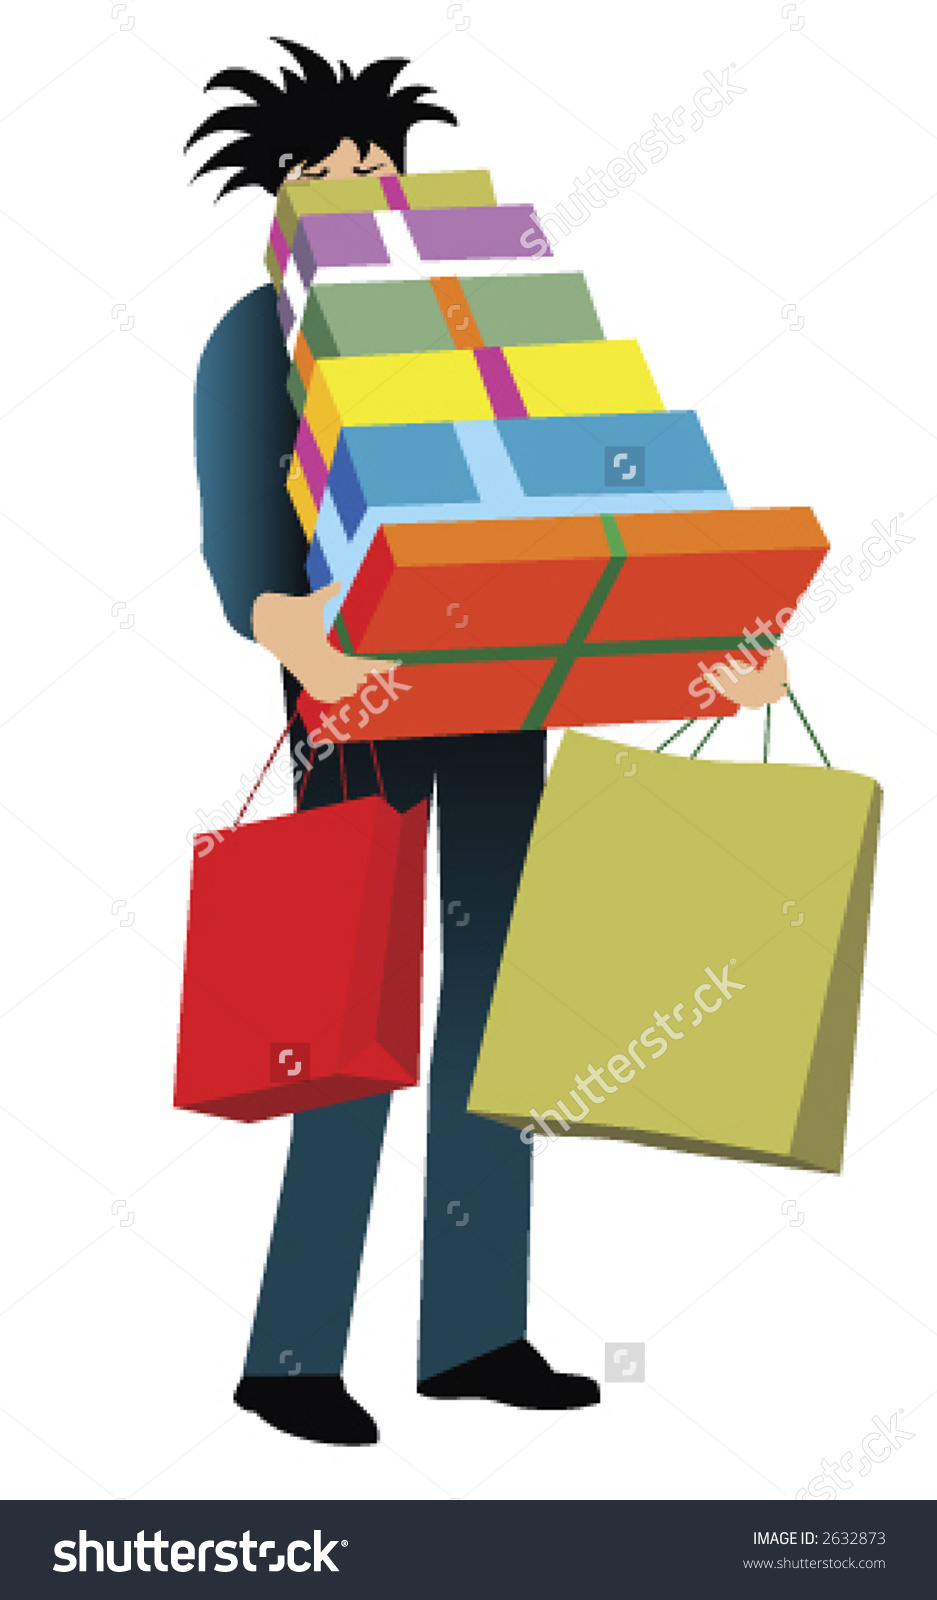 Illustration Man Carrying Shopping Bags Gifts Stock Vector 2632873.